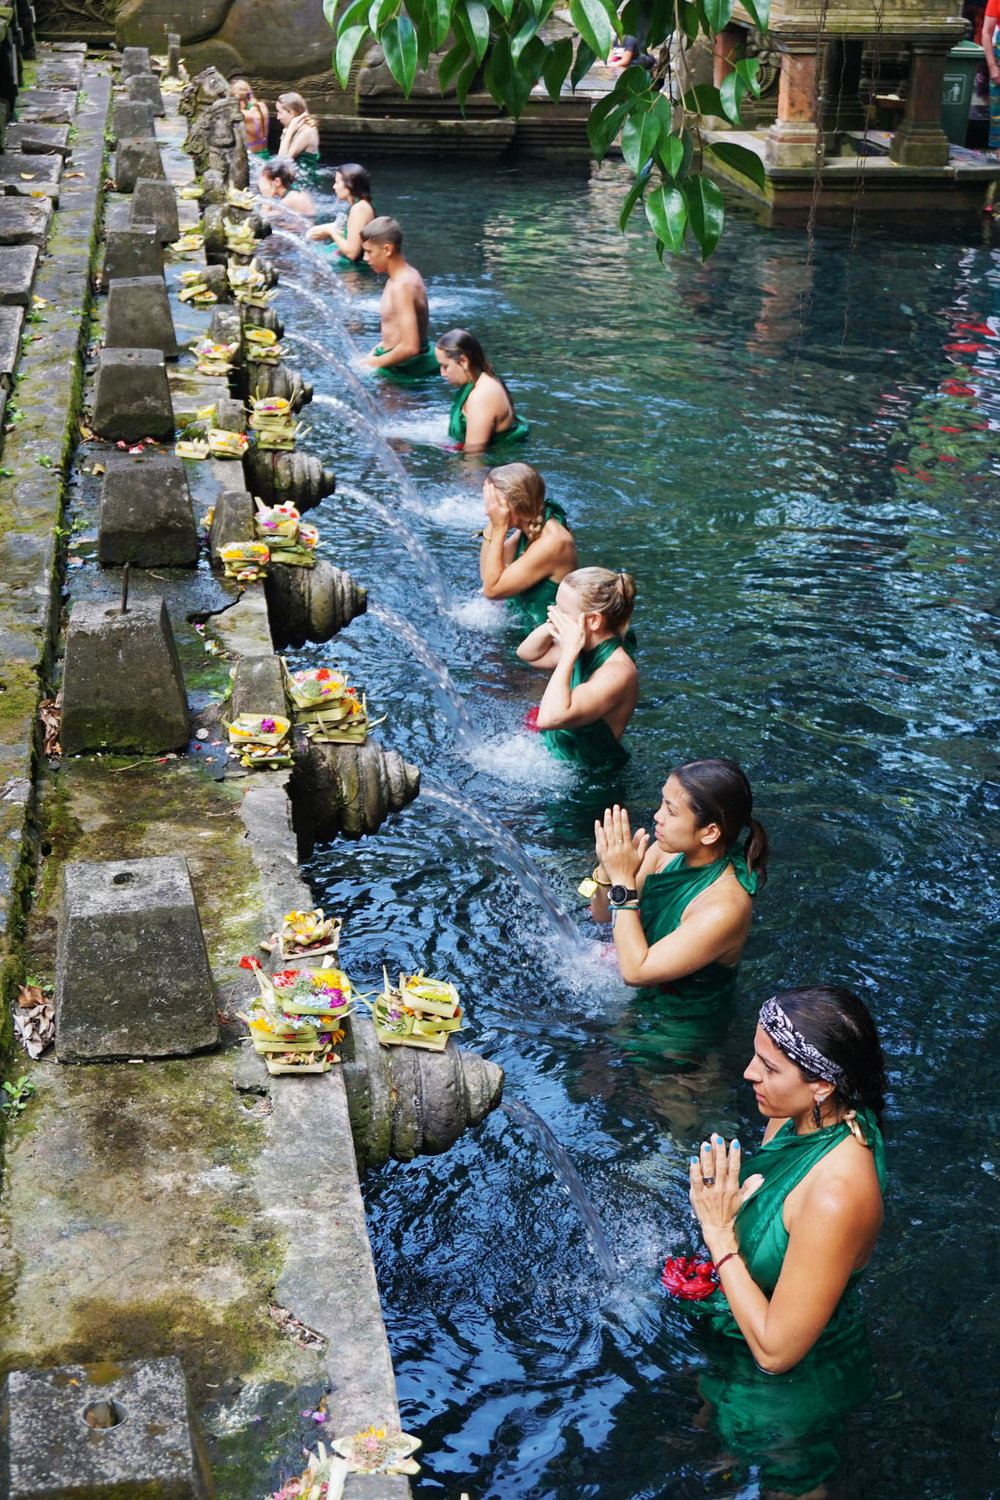 We were part of a very special Hindu Balinese tradition, the purification bathing ritual